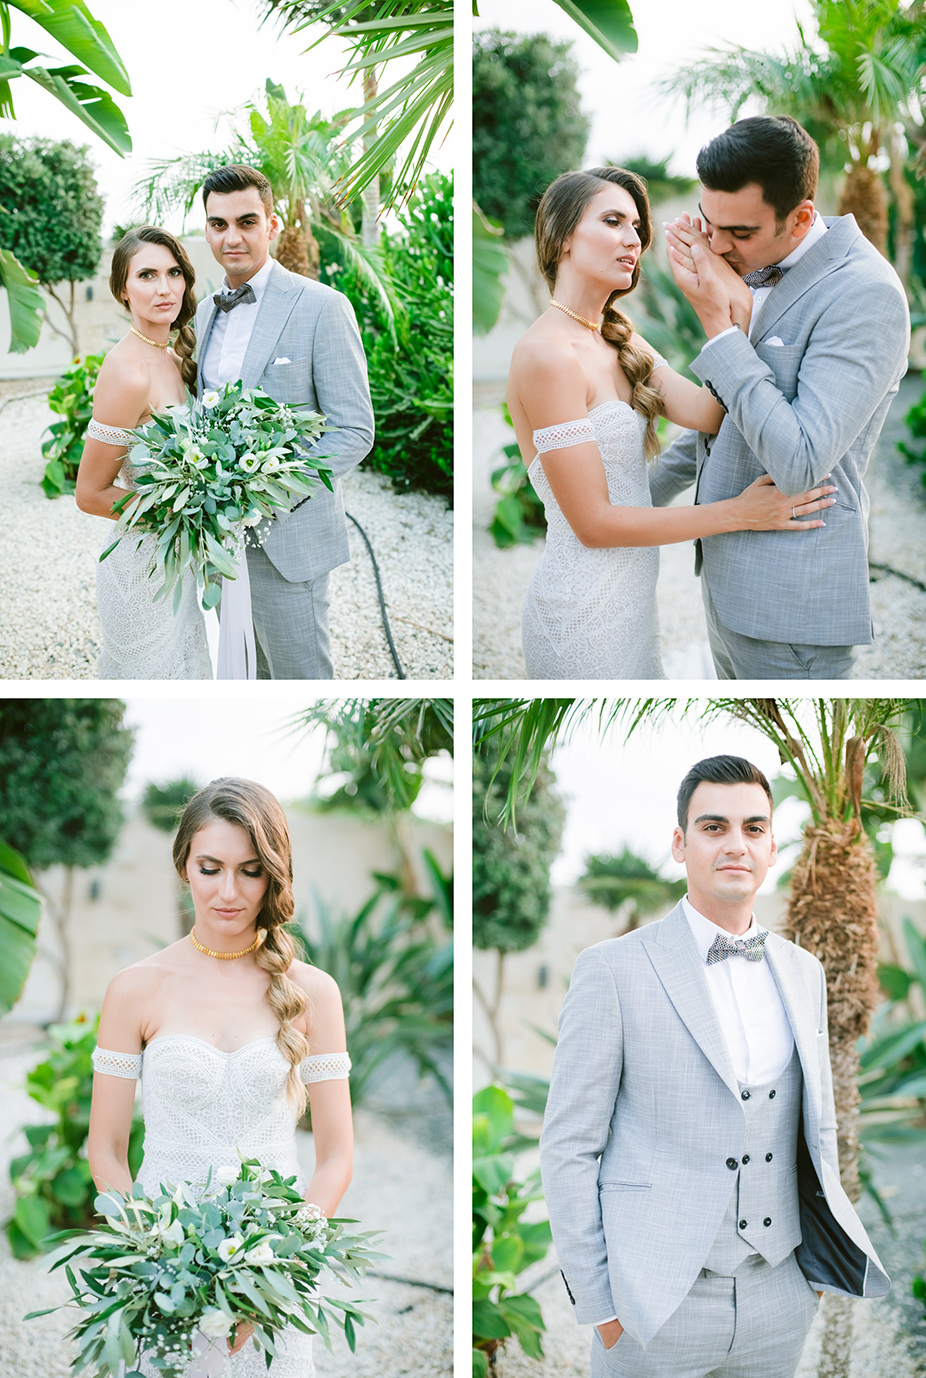 Wedding photographer Ayia Napa